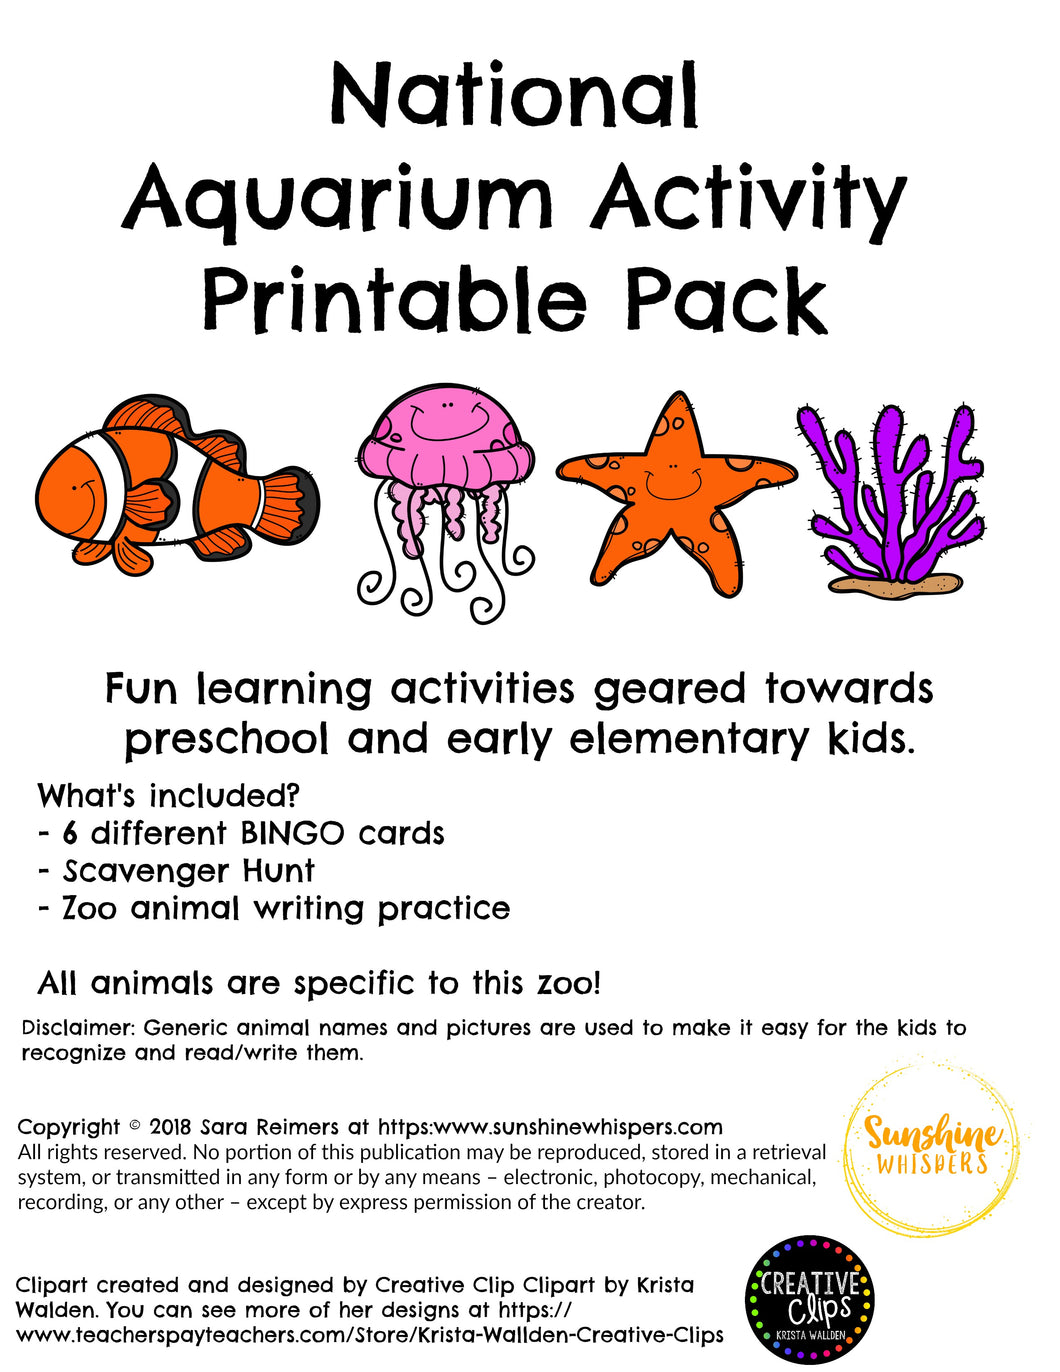 National Aquarium Activity Printable Pack